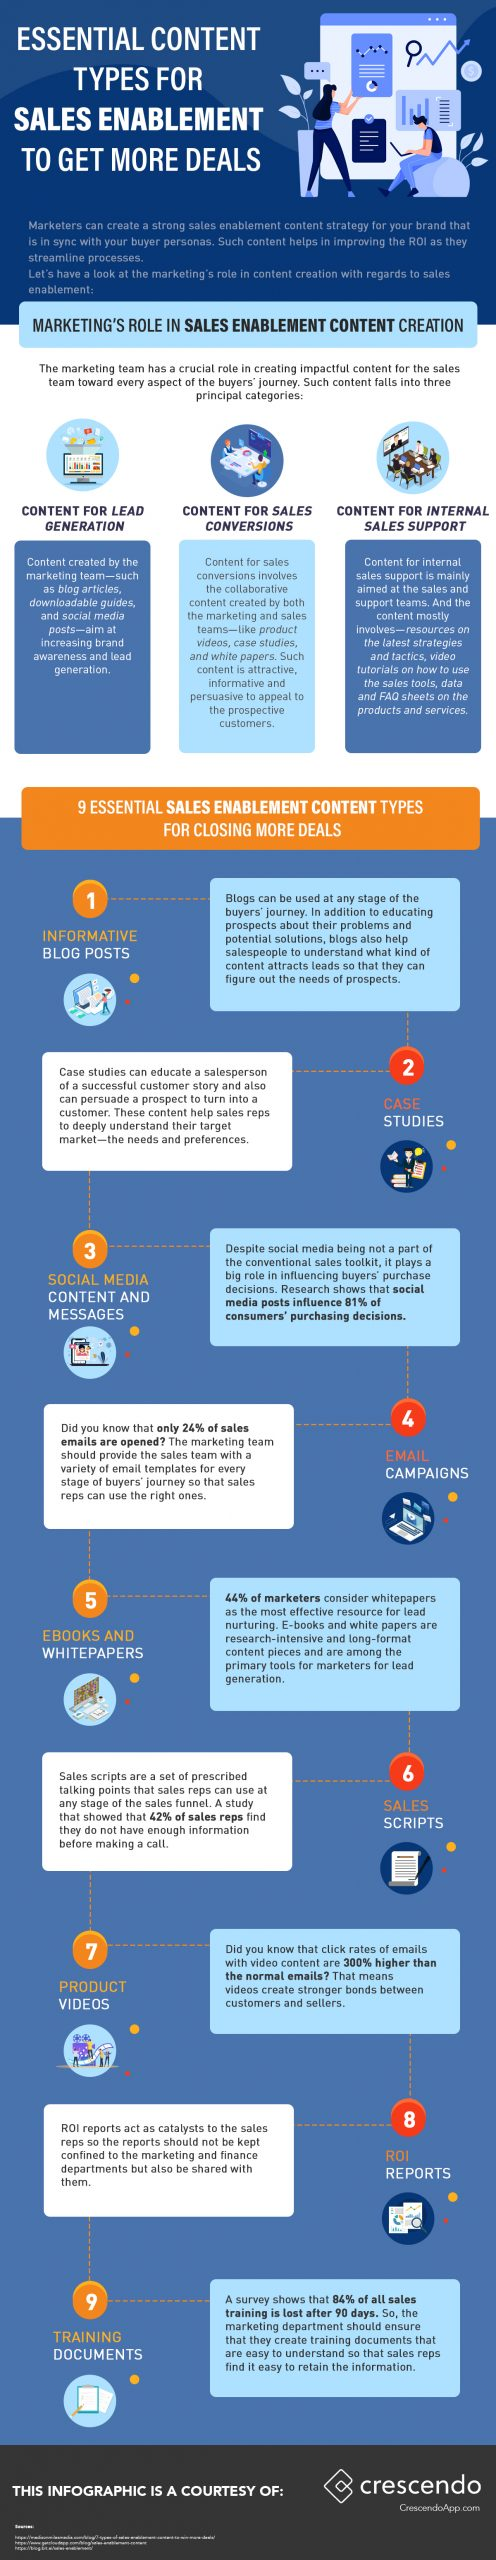 Infographic about Understanding How Personalized Content Drives Sales